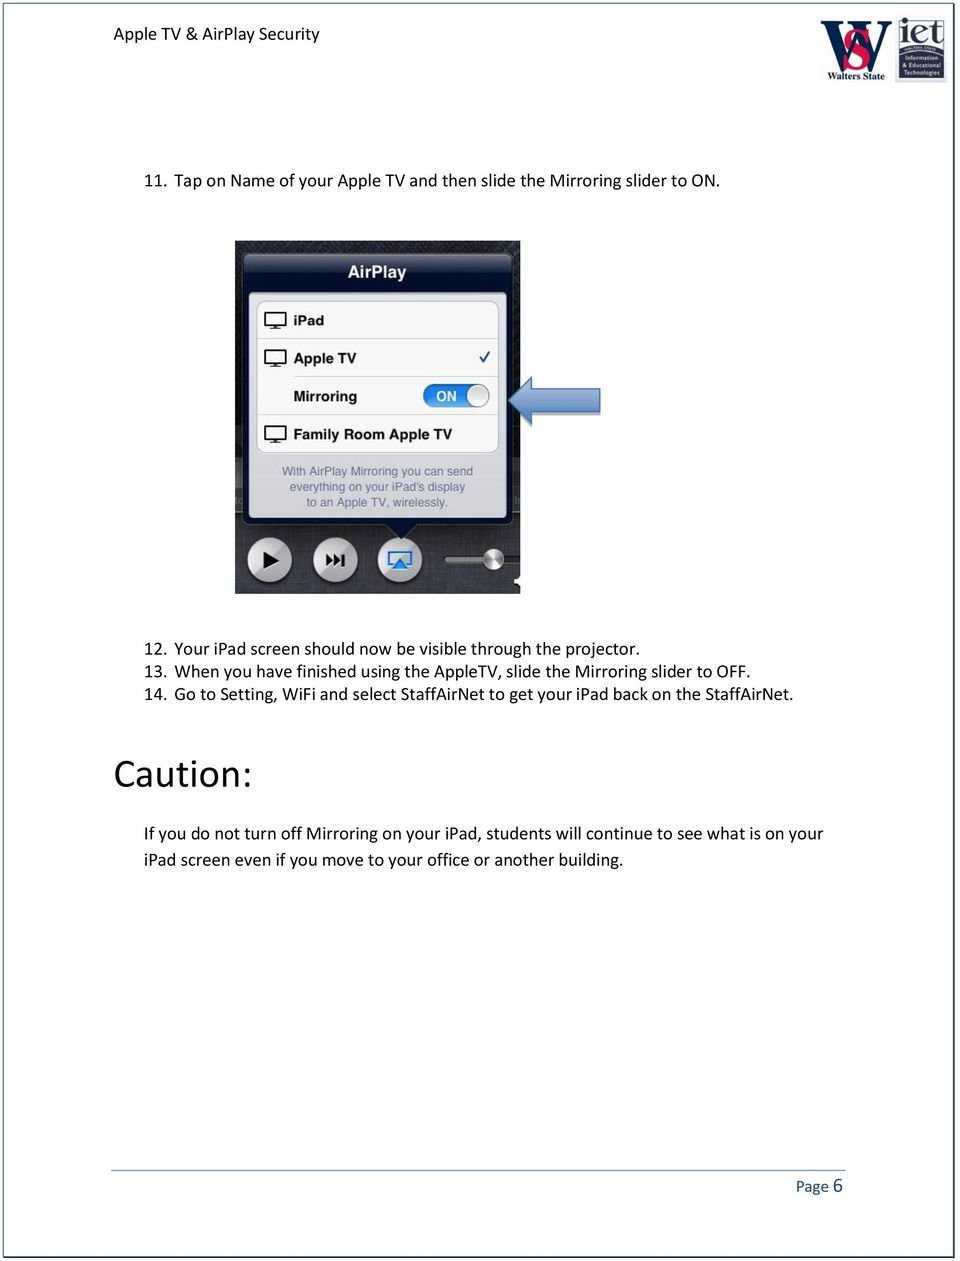 APPLE TV & AIRPLAY SECURITY - PDF